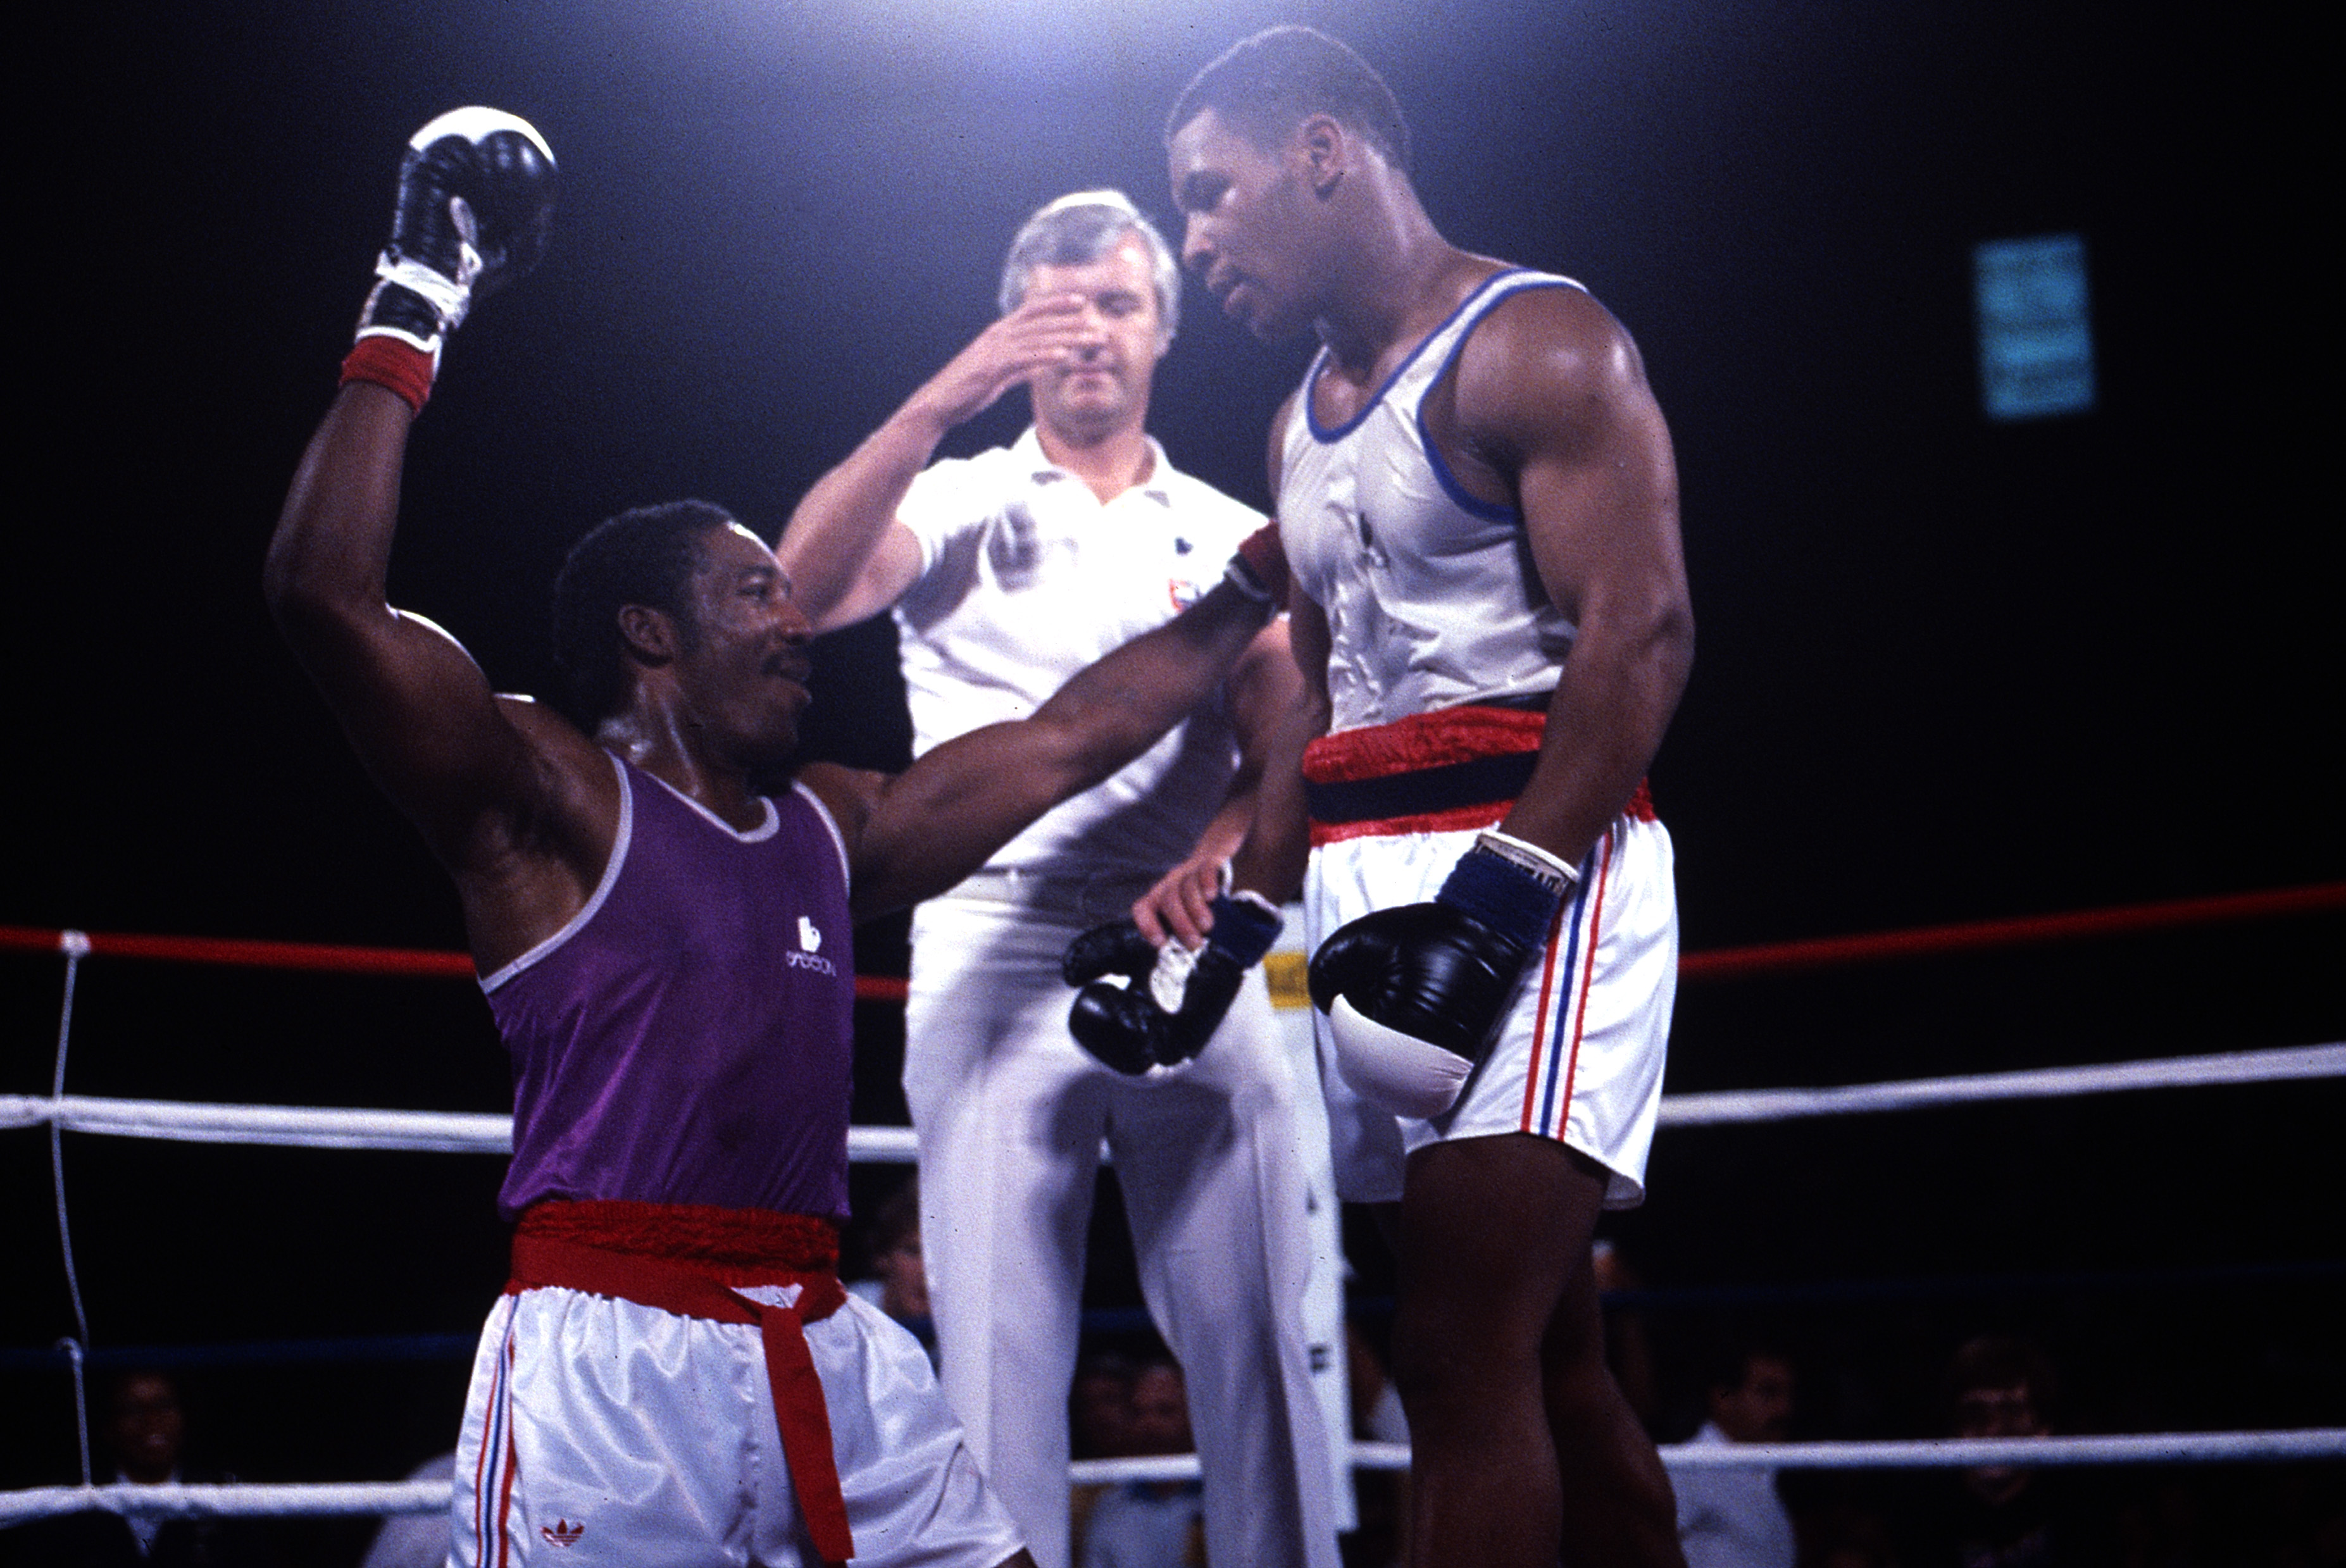 Mike Tyson at 1984 Summer Olympics